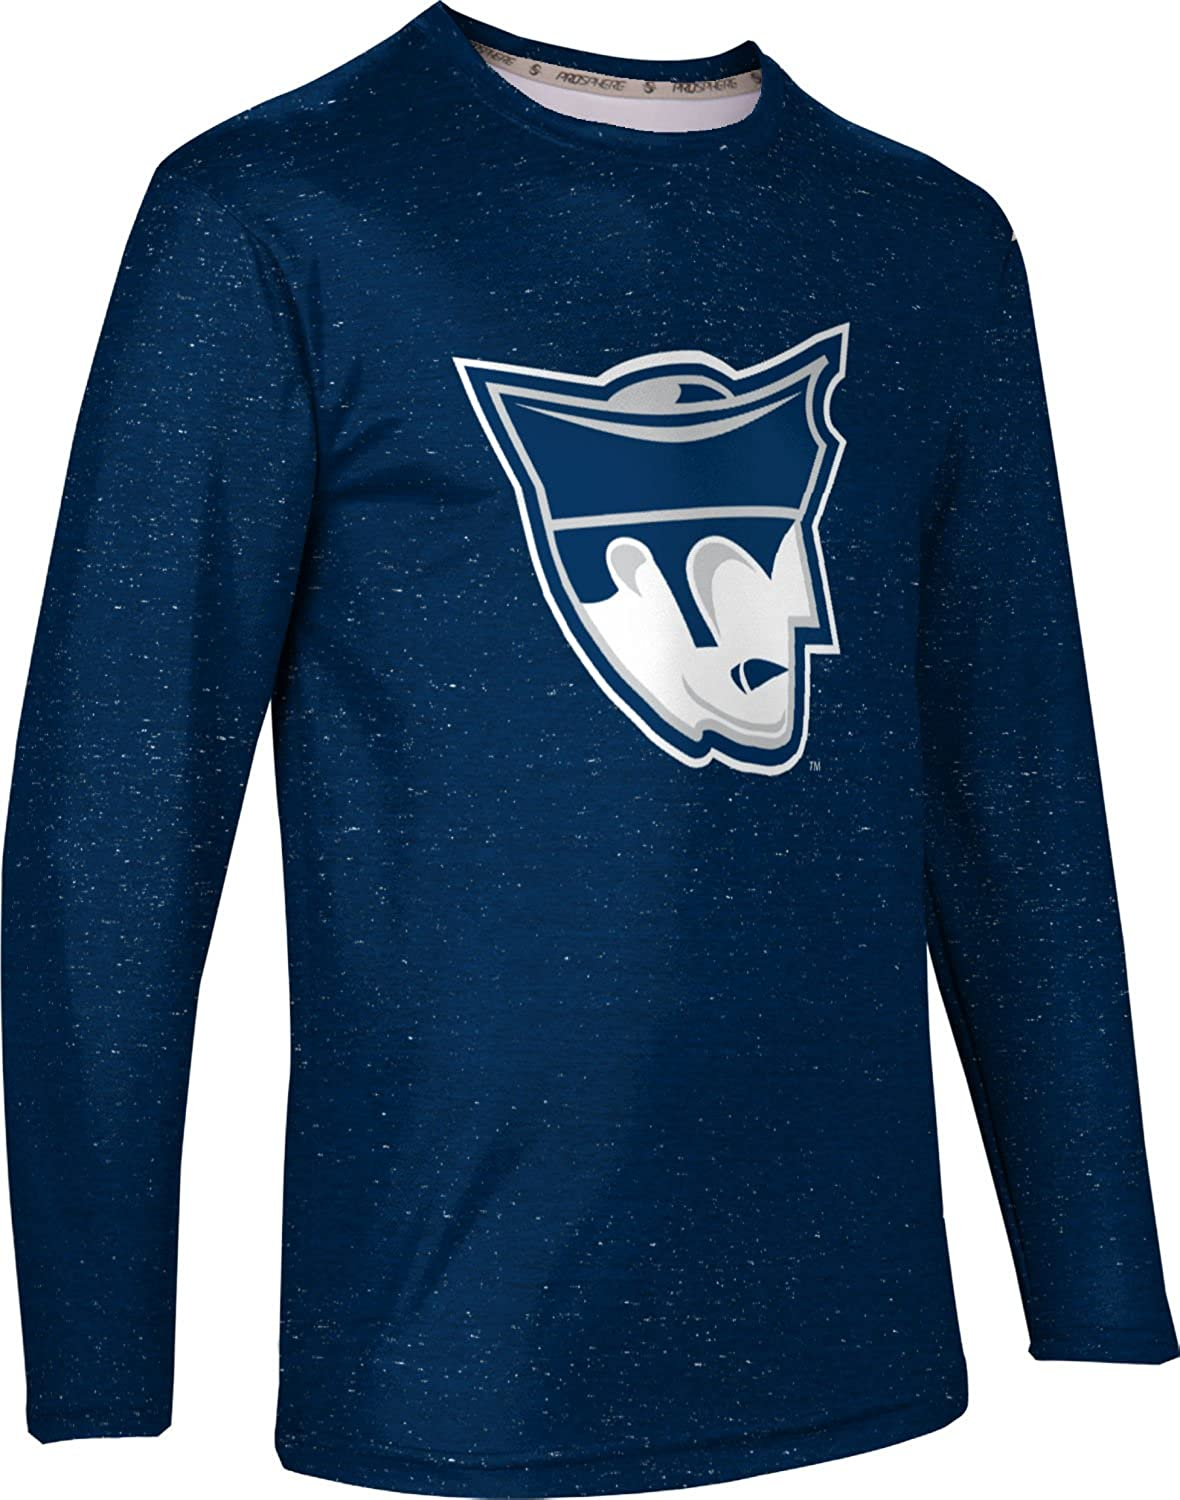 Heathered ProSphere Marietta College Mens Long Sleeve Tee